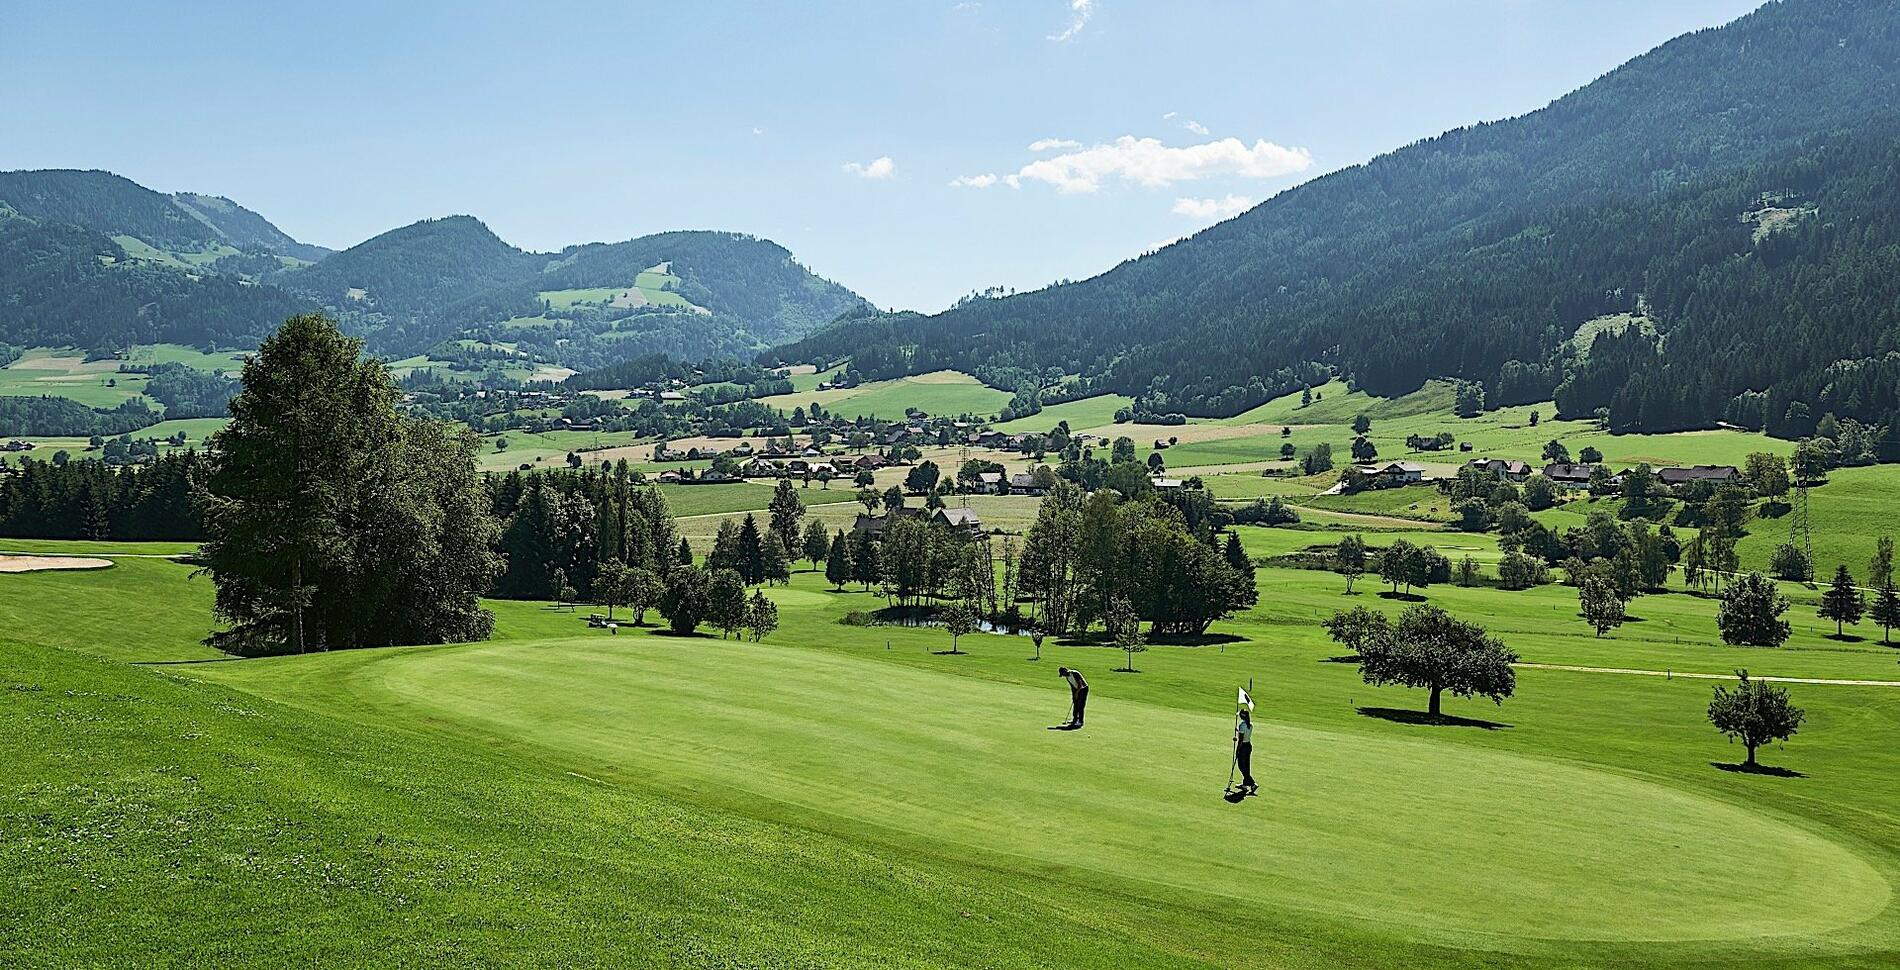 Golf course at Romantik Hotel Schloss Pichlarn, Austria